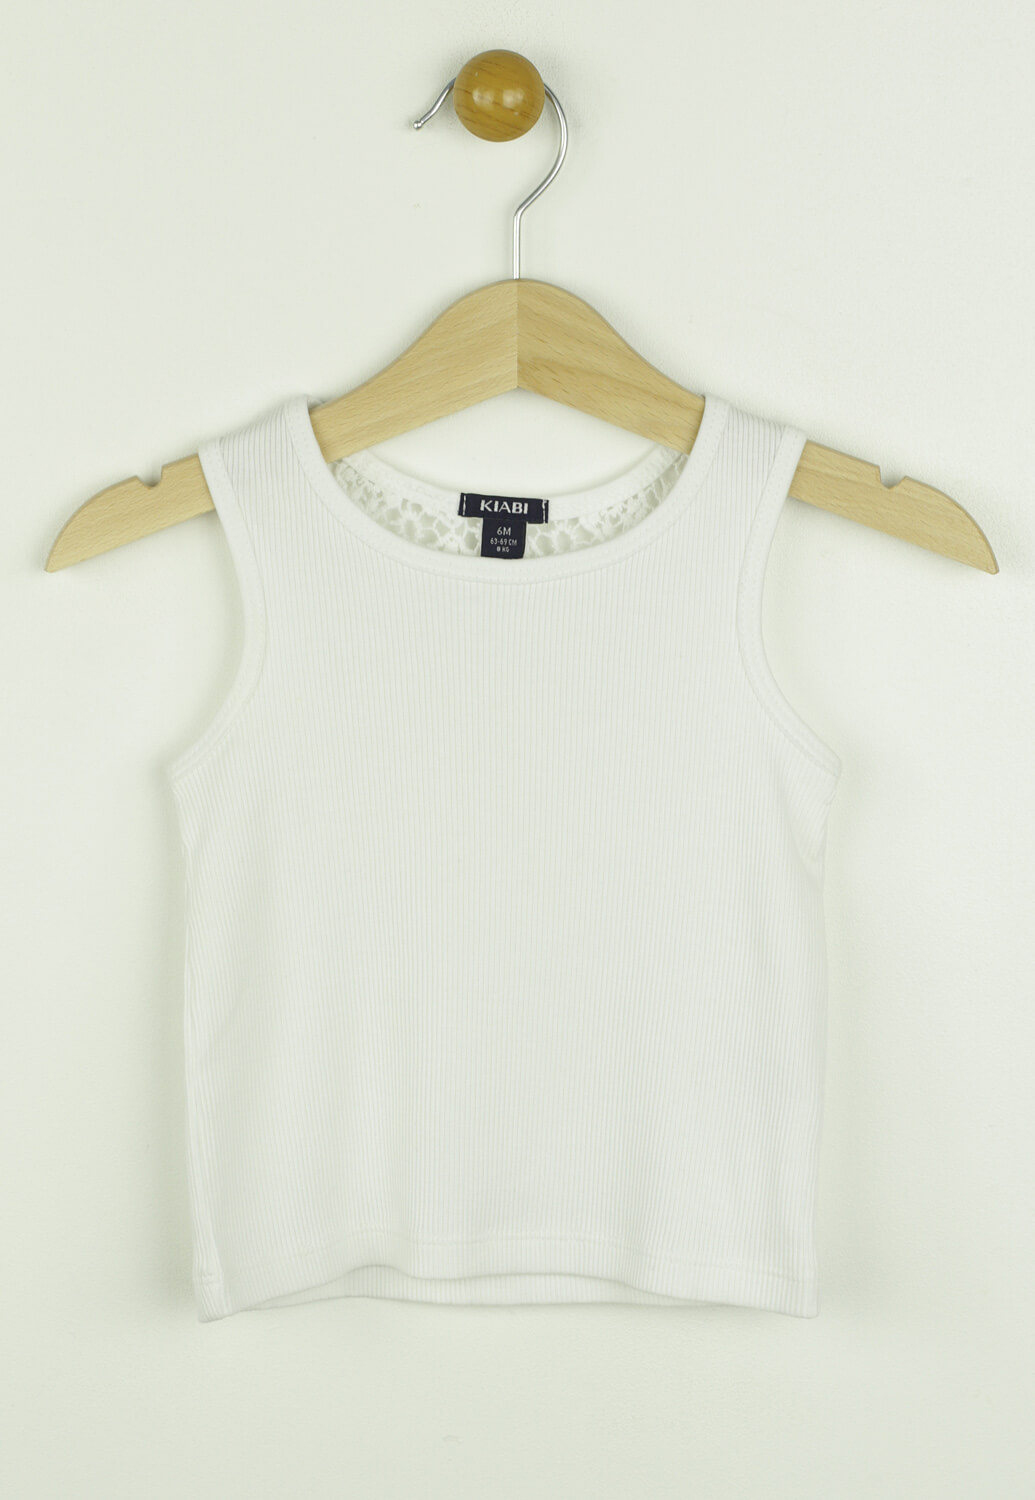 Maieu Kiabi Basic White